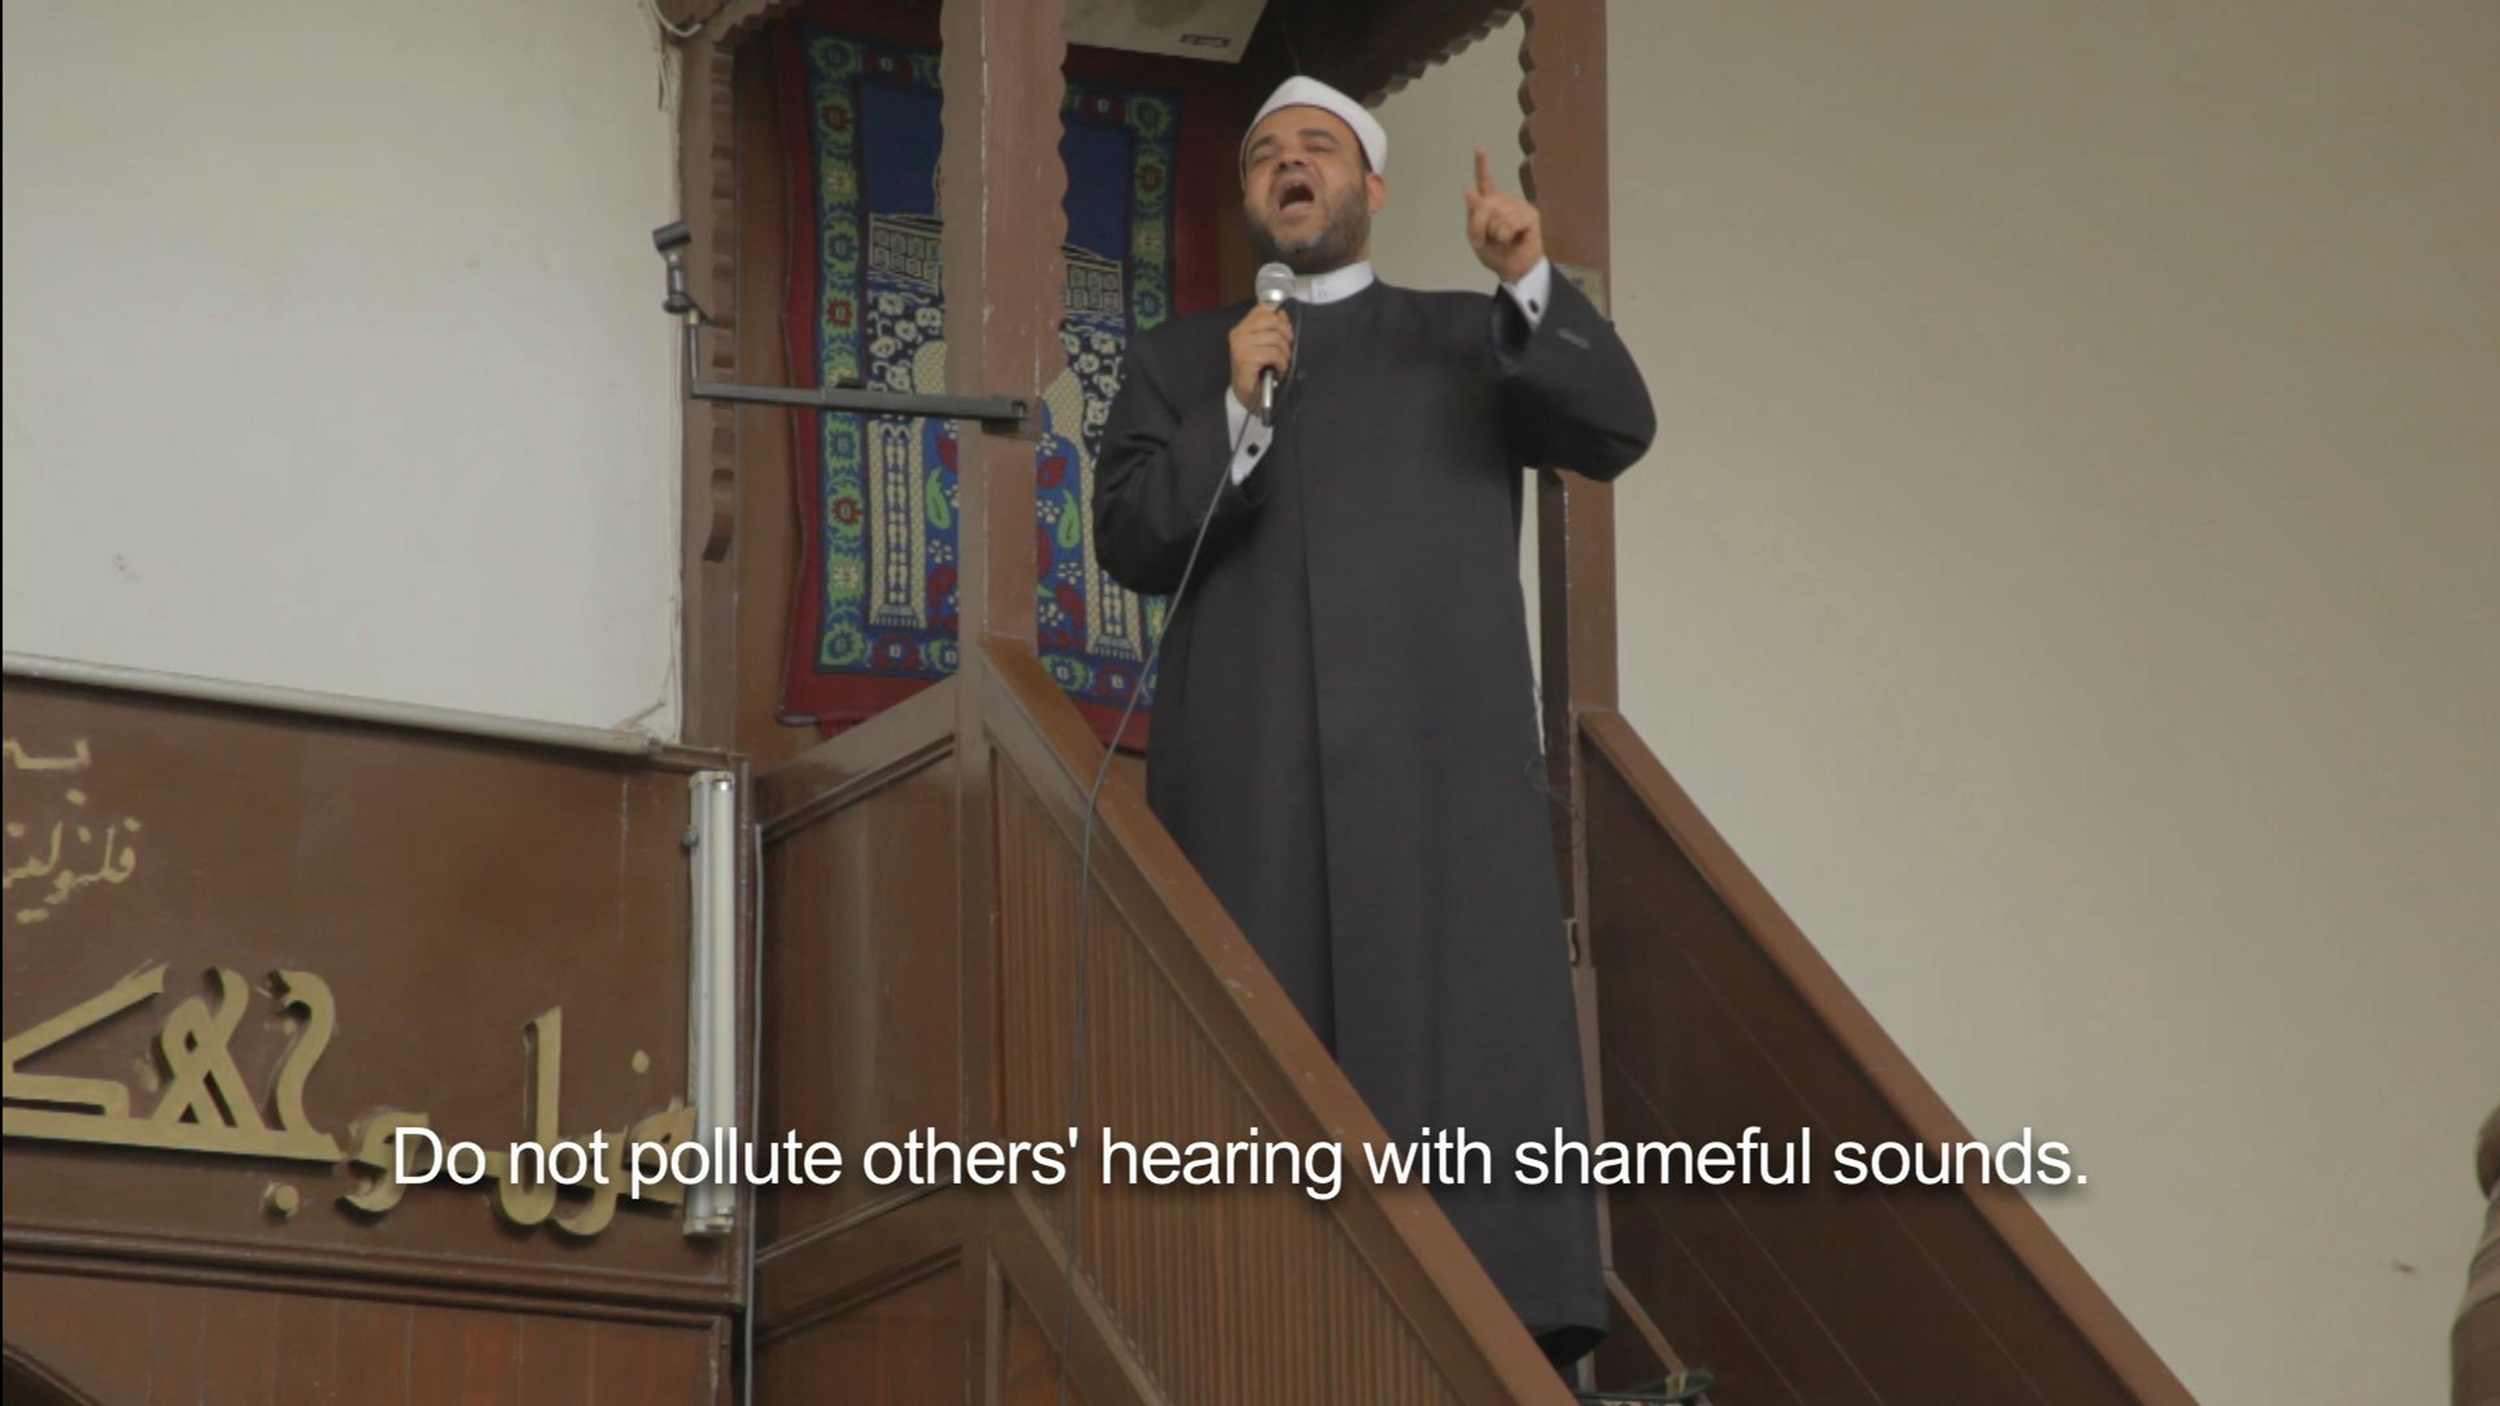 Still from my new video work titled The All-Hearing 2014  So pervasive to daily Cairo life is the a loudspeaker libertarianism, that the issue of hearing damage and noise pollution was immediately accepted as a topic for a Friday sermon when I suggested the idea to two Cairene Sheikhs. Despite new laws that the military government established that seek to monotonize the delivery of sermons by enforcing Sheikhs to only give speeches according to the weekly government sanctioned topic, our Sheikhs remained even more determined to have the issue of noise heard. And heard not only to their congregation inside the mosque but to all those passers by who were barraged by the mosques loudspeakers broadcasting into the streets outside. The military crackdown on the amplified voices of the city is done in the name of policing noise and the lawless terrain of the loudspeaker yet it is in fact simply a means to direct the flow of voices away from espousing anything against the government. Anything that they do not want heard. Hence on the day the Sheikhs delivered their sermons on noise pollution as far as the ear could hear all the mosques in the surrounding area were explaining the Prophets's Ascension to Heaven, the government dictated topic of that week.  The All-Hearing is part of  Positions  a collection of 5 solo exhibtions opening at the Van AbbeMuseum this Saturday. There I will present the full  Tape Echo  project, co-commissioned with Beirut in Cairo and including a new video work produced for  Position s. With  Tape Echo  Abu Hamdan proposes a series of methods for documenting and intervening within of Cairo's dense audio urbanity, looking at how voices are distributed and hearing is damaged within of the city's rapidly changing sonic conditions. http://vanabbemuseum.nl/en/programme/detail/?tx_vabdisplay_pi1[ptype]=18&tx_vabdisplay_pi1[project]=1266